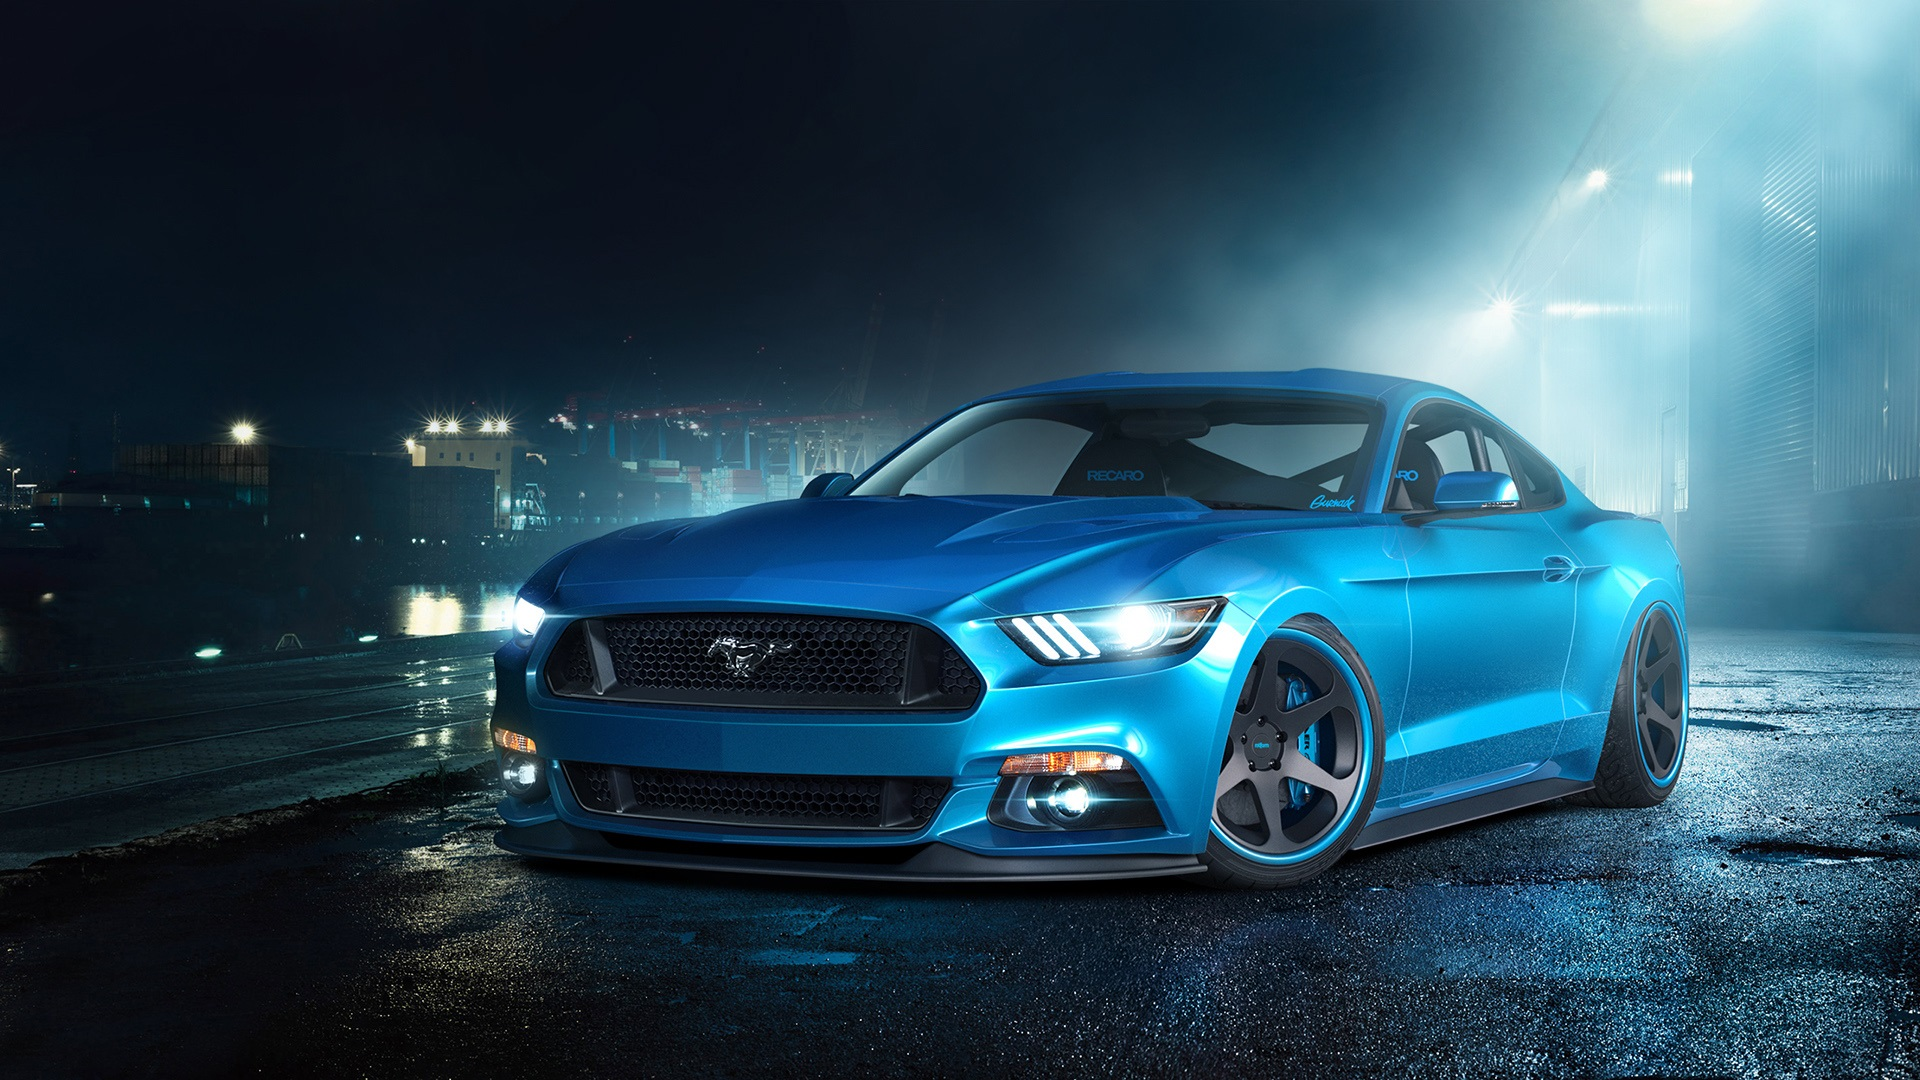 Wallpaper Ford Mustang Gt Blue Supercar 1920x1080 Full Hd 2k Picture